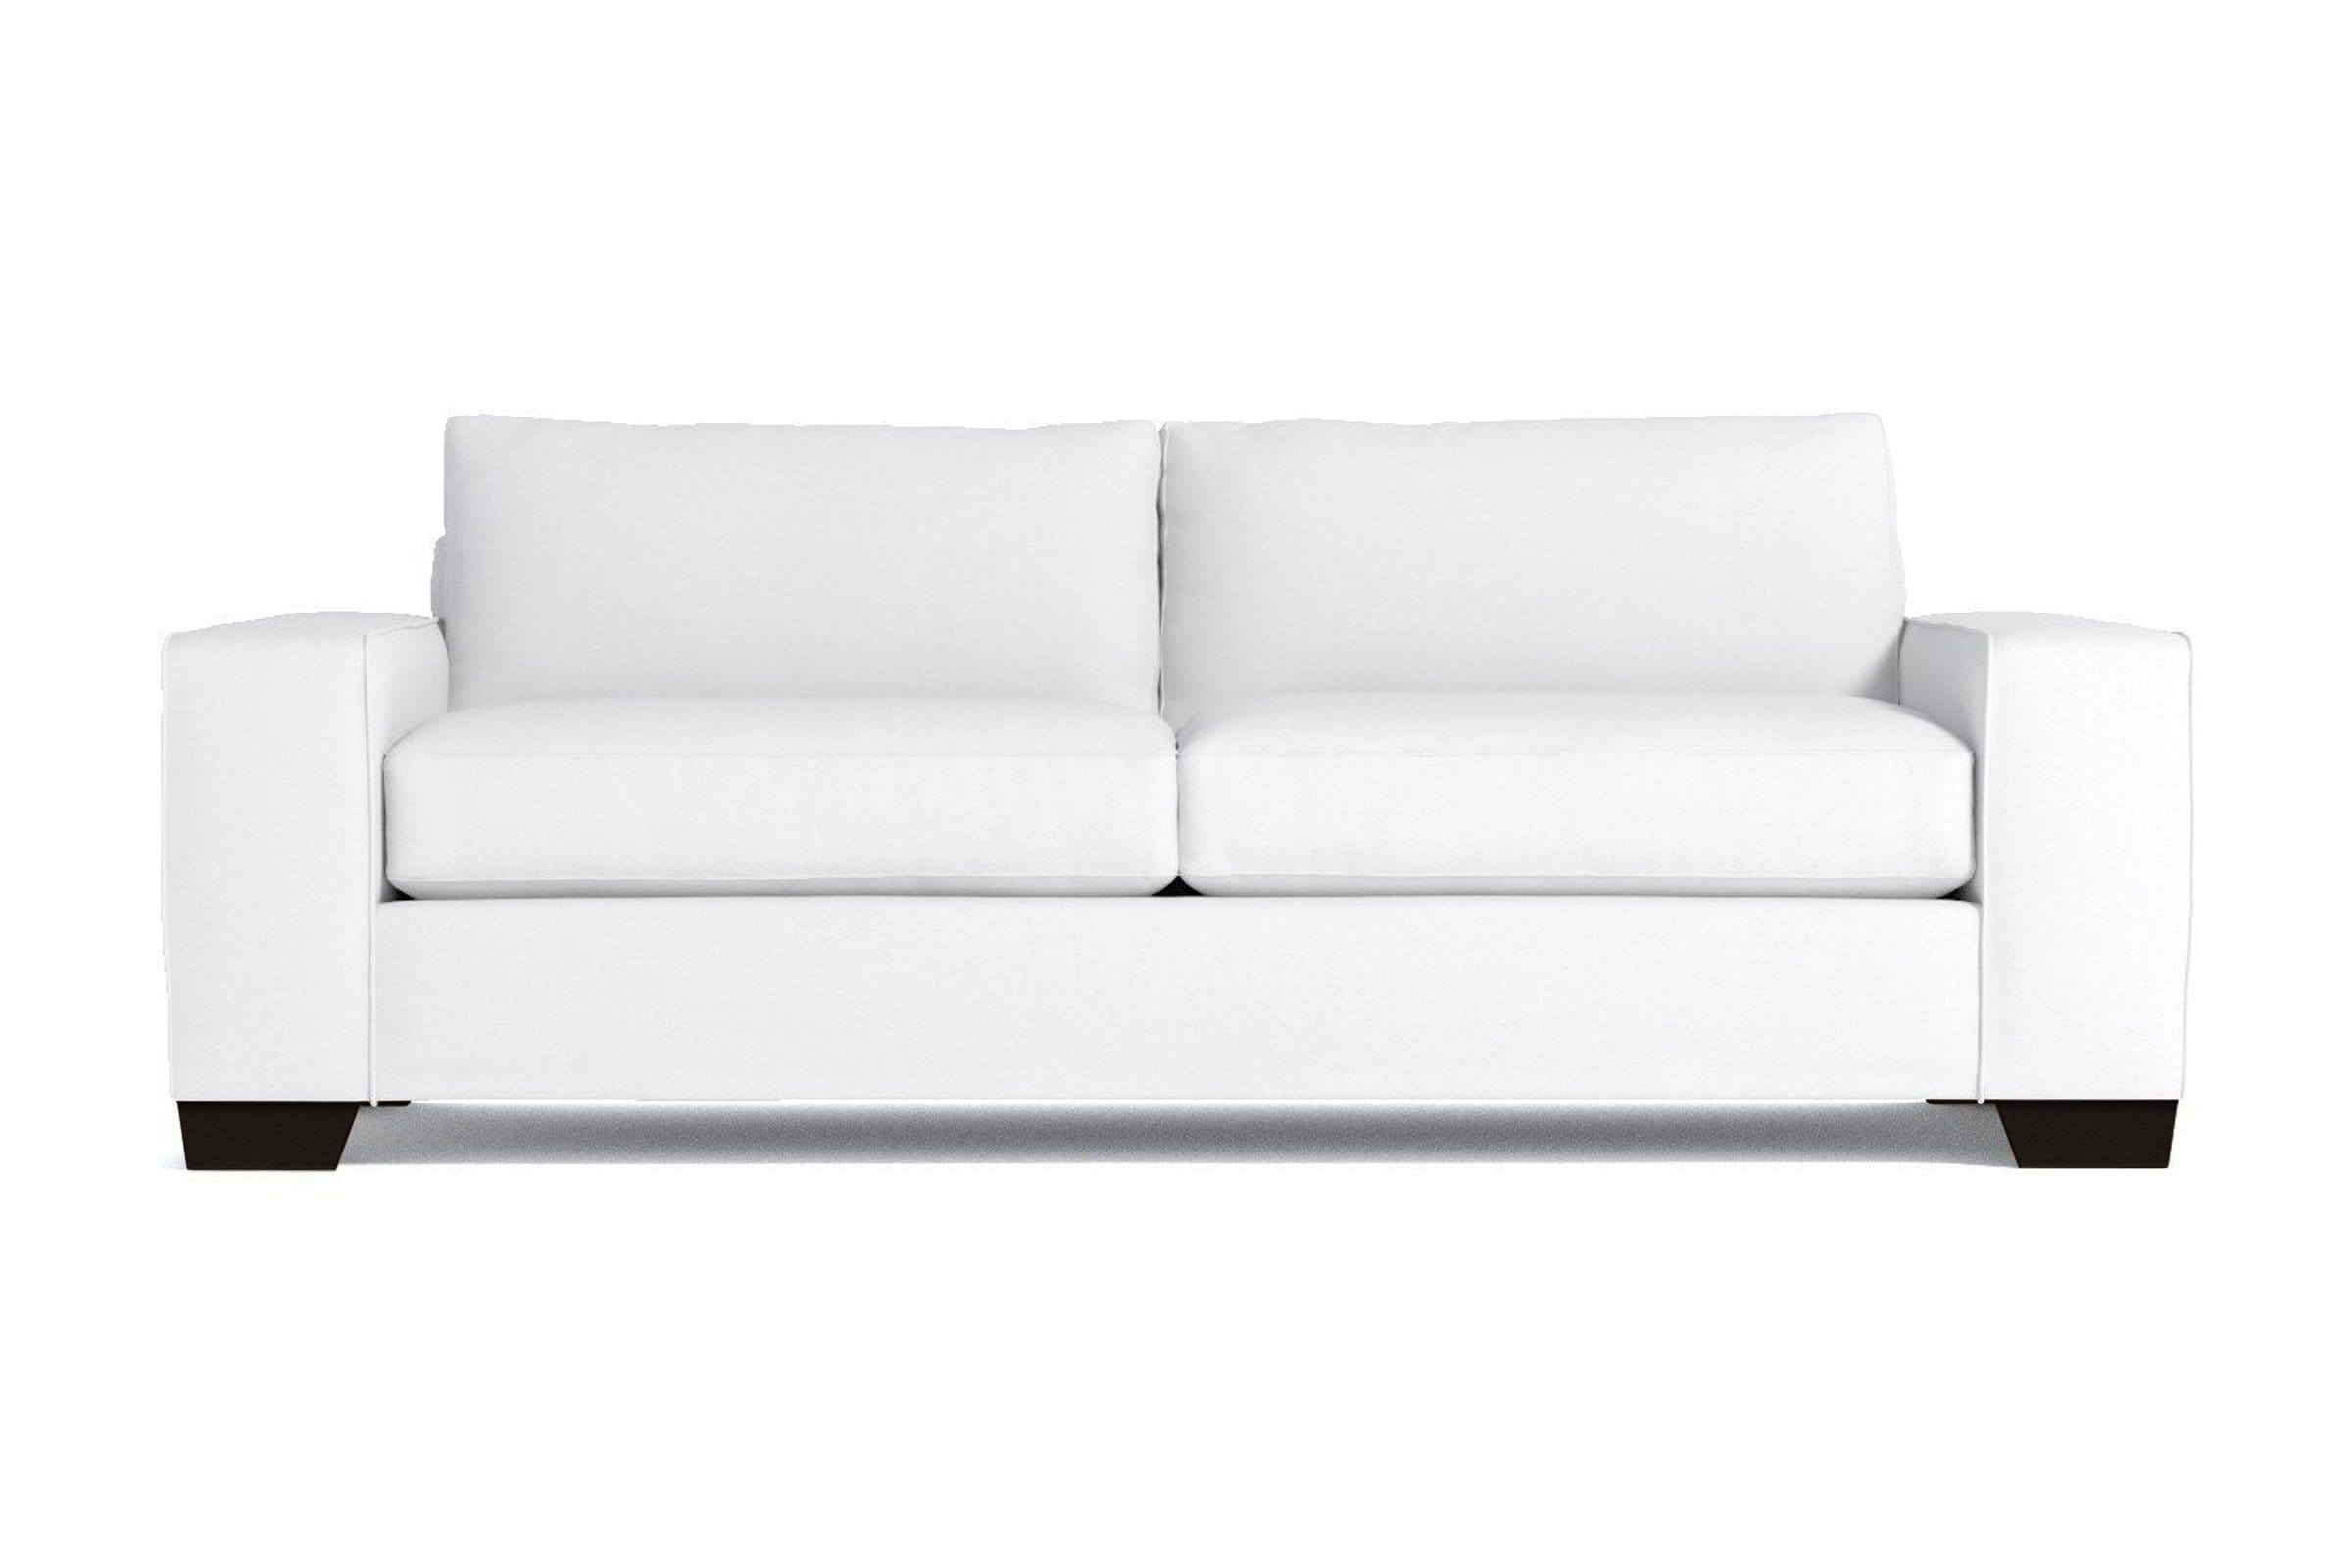 Melrose Sofa - White Velvet - Modern Couch Made in the USA - Sold by Apt2B